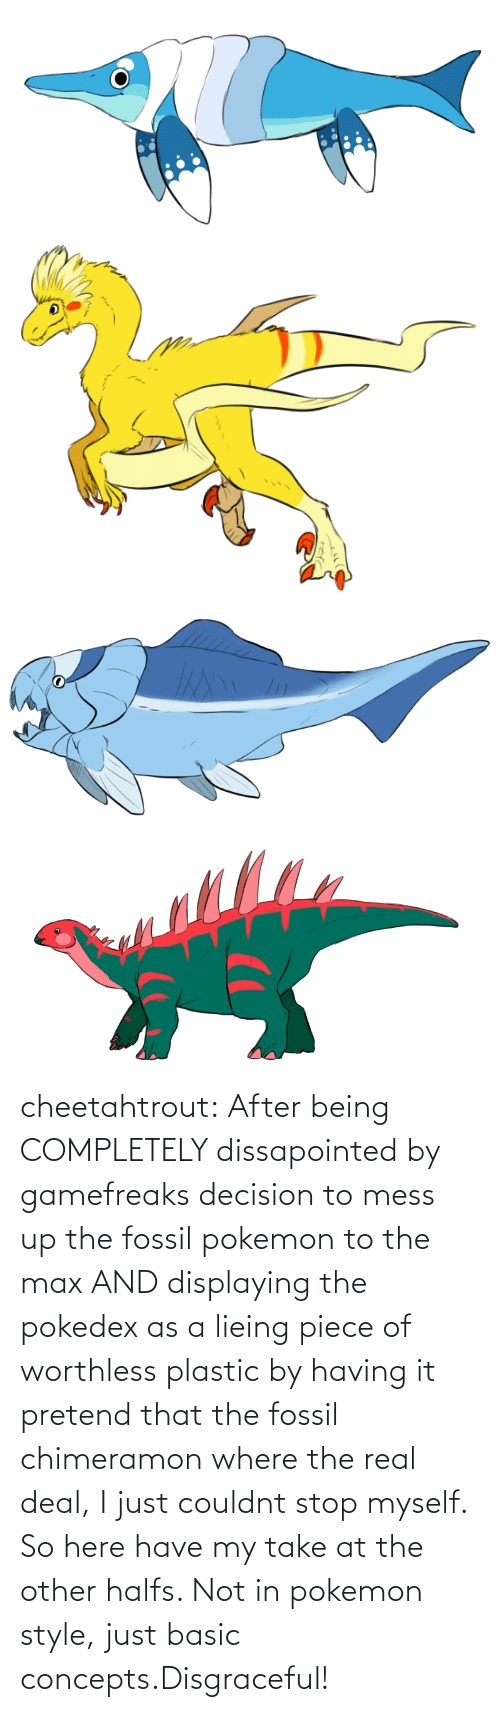 Other: cheetahtrout:  After being COMPLETELY dissapointed by gamefreaks decision to mess up the fossil pokemon to the max AND displaying the pokedex as a lieing piece of worthless plastic by having it pretend that the fossil chimeramon where the real deal, I just couldnt stop myself. So here have my take at the other halfs. Not in pokemon style, just basic concepts.Disgraceful!